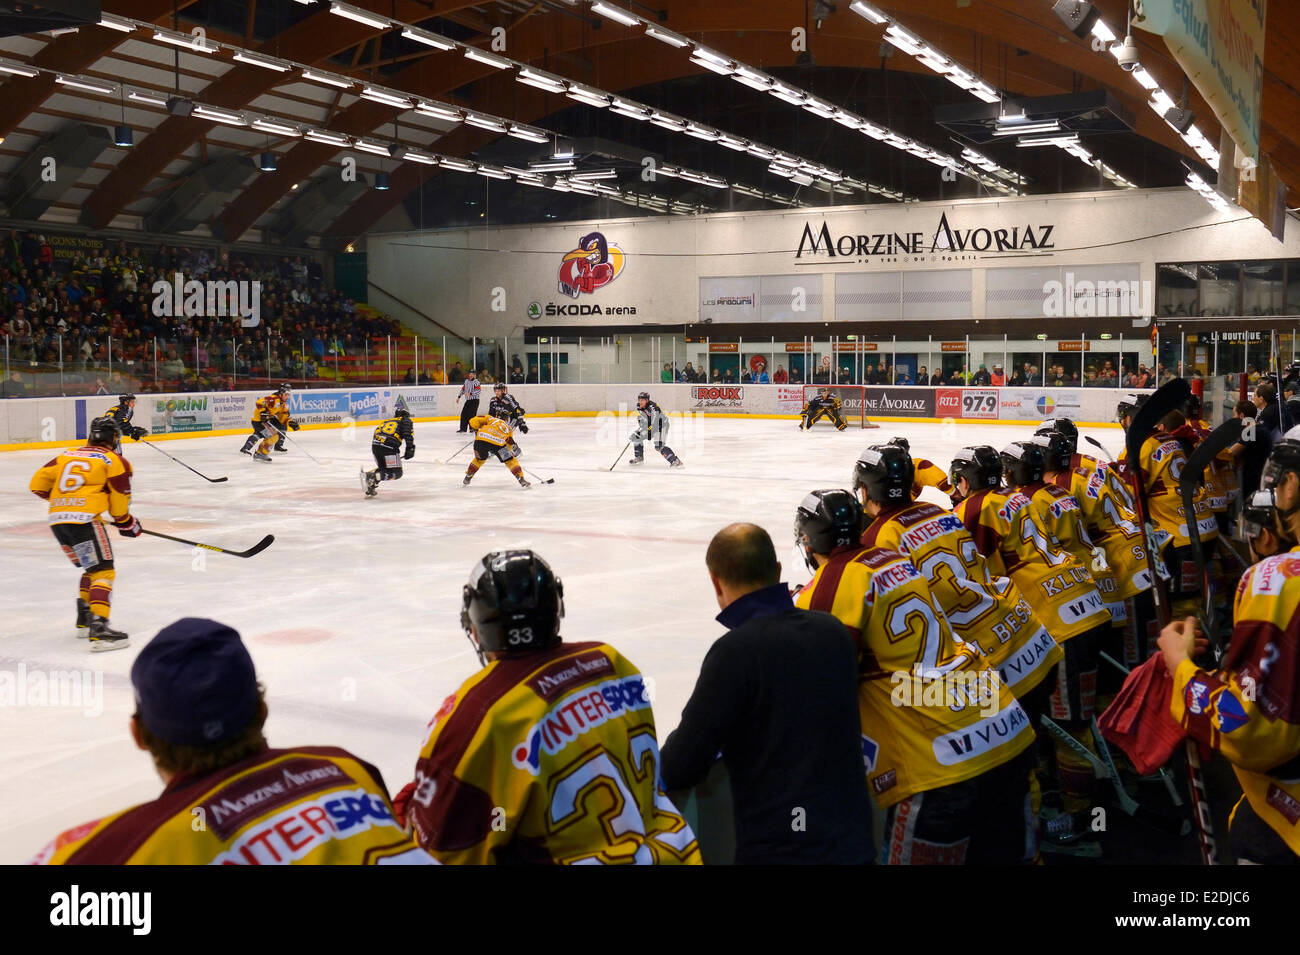 France Haute Savoie Morzine ice hockey game from the Morzine-Avoriaz Hockey Club called the Penguins - Stock Image